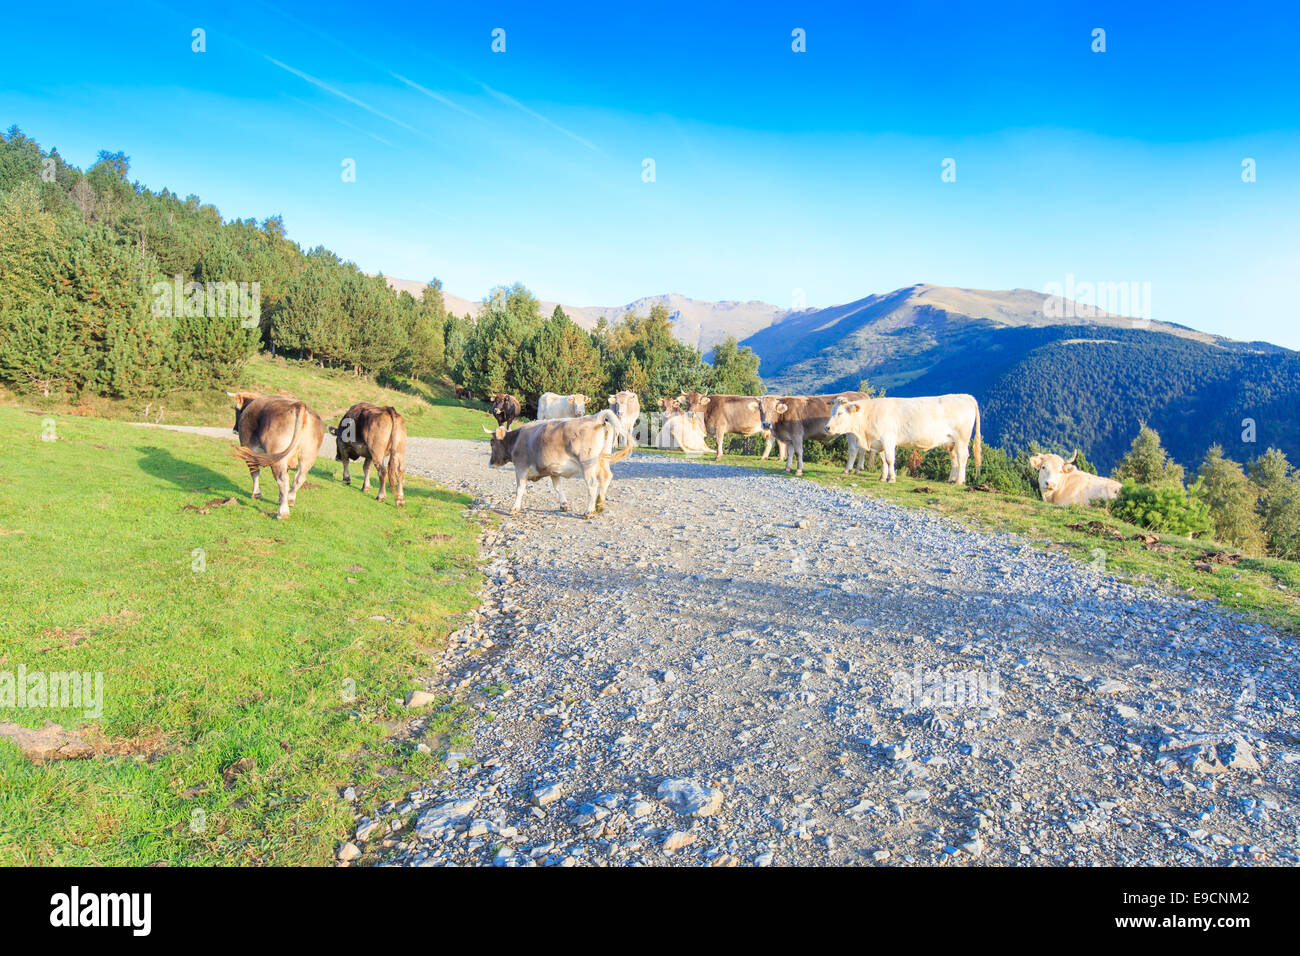 A herd of white and brown cows in the Spanish Pyrenees walking and lying along a dirt road on a mountain slope - Stock Photo